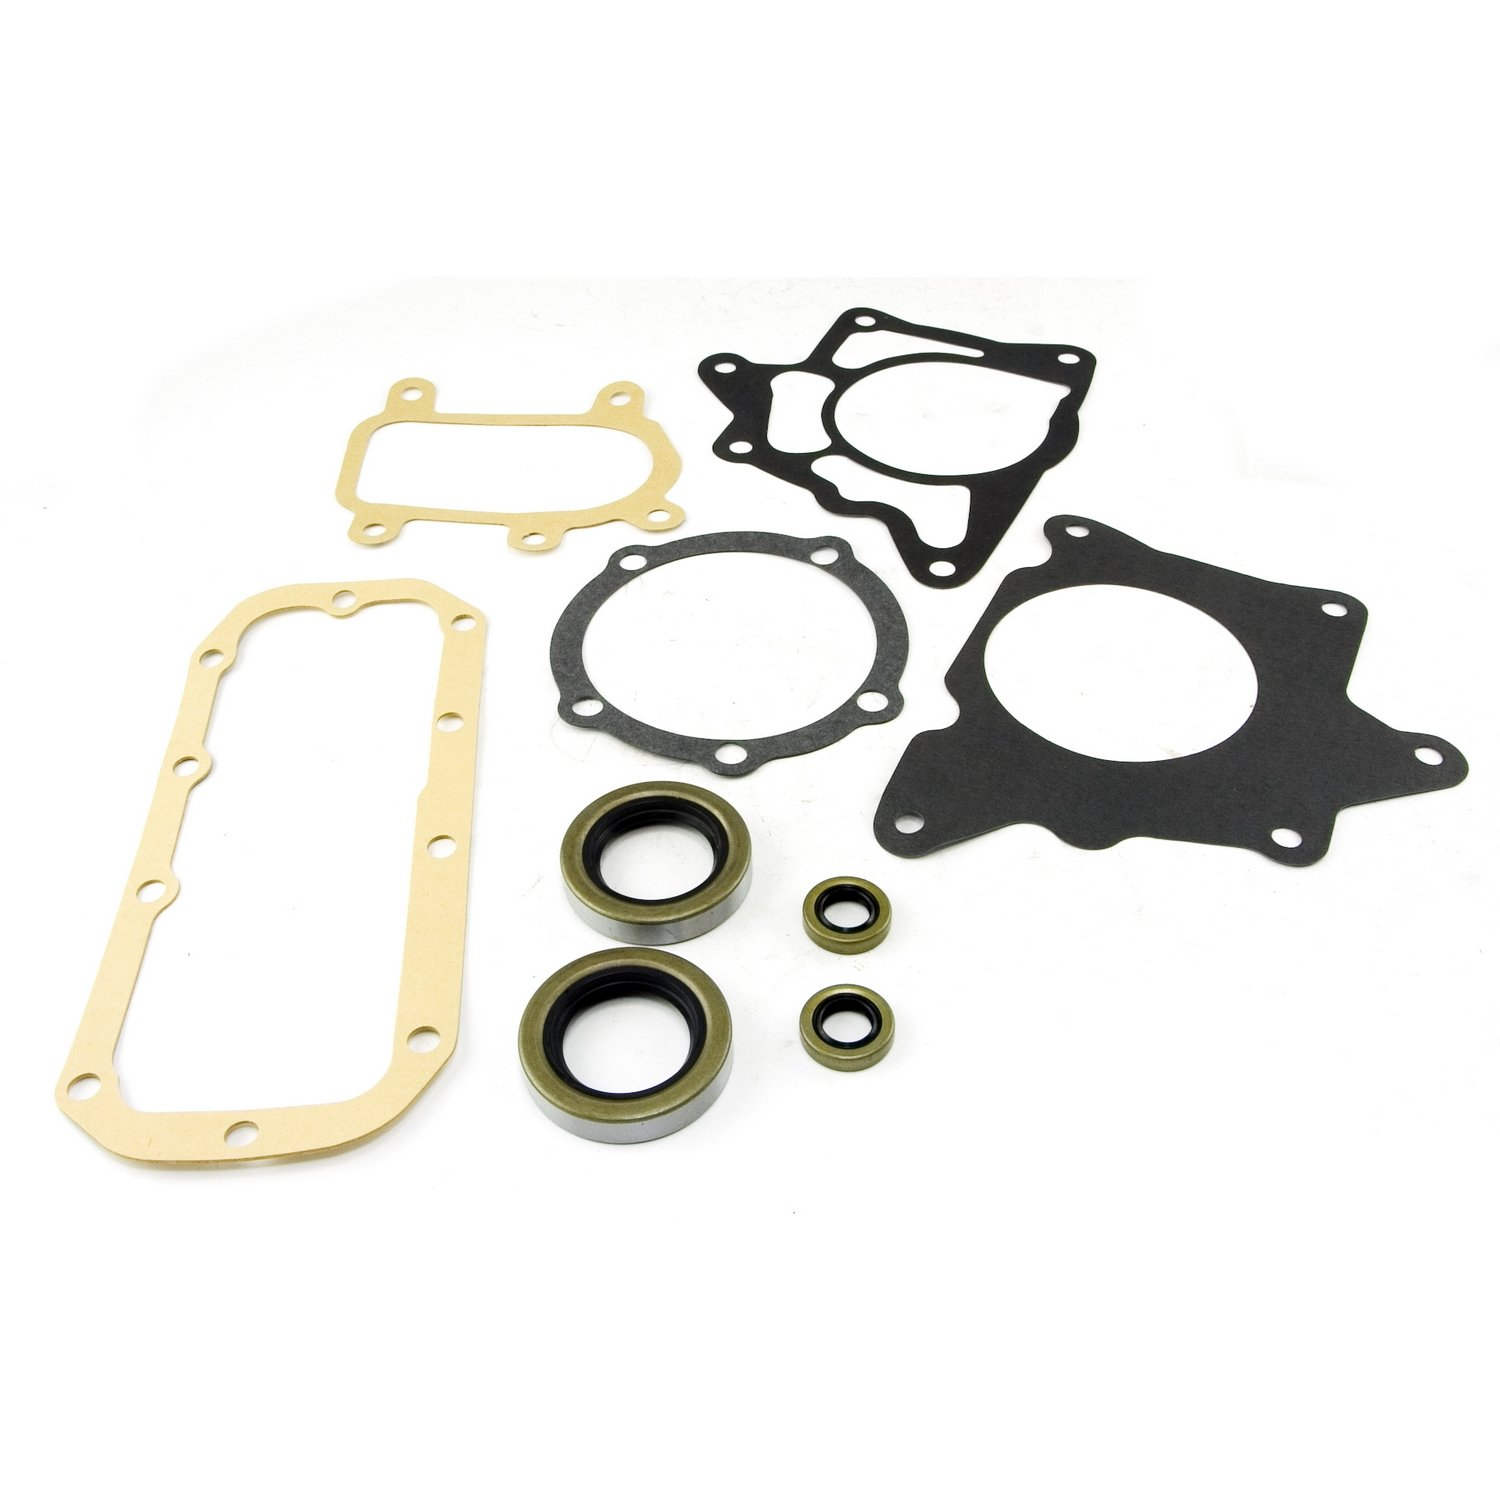 Omix-Ada 18603.02 Transfer Case Gasket/Oil Seal Kit